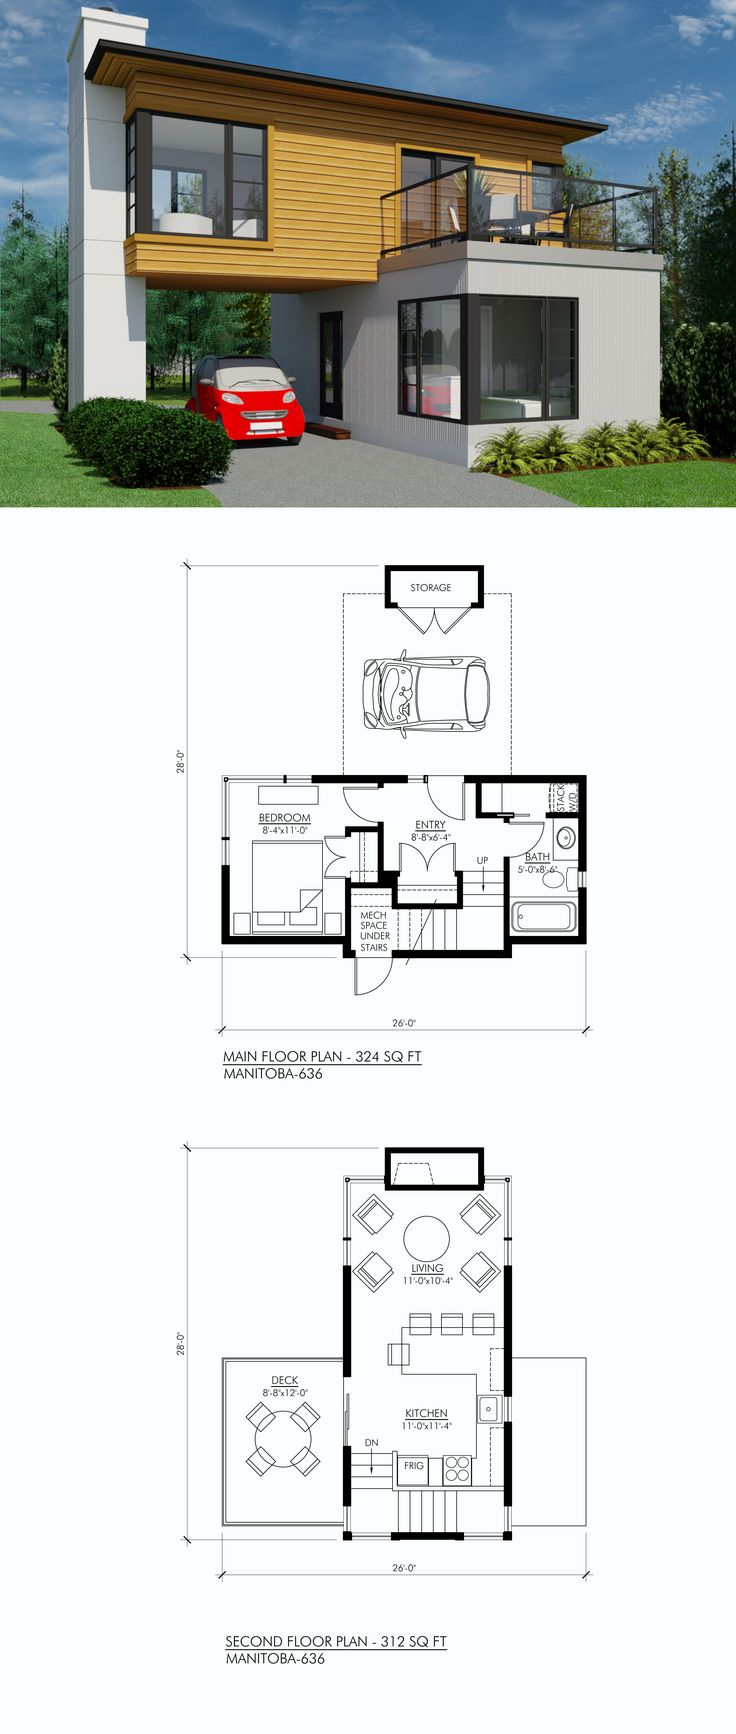 636 sq. ft., 1 bedroom, 1 bath